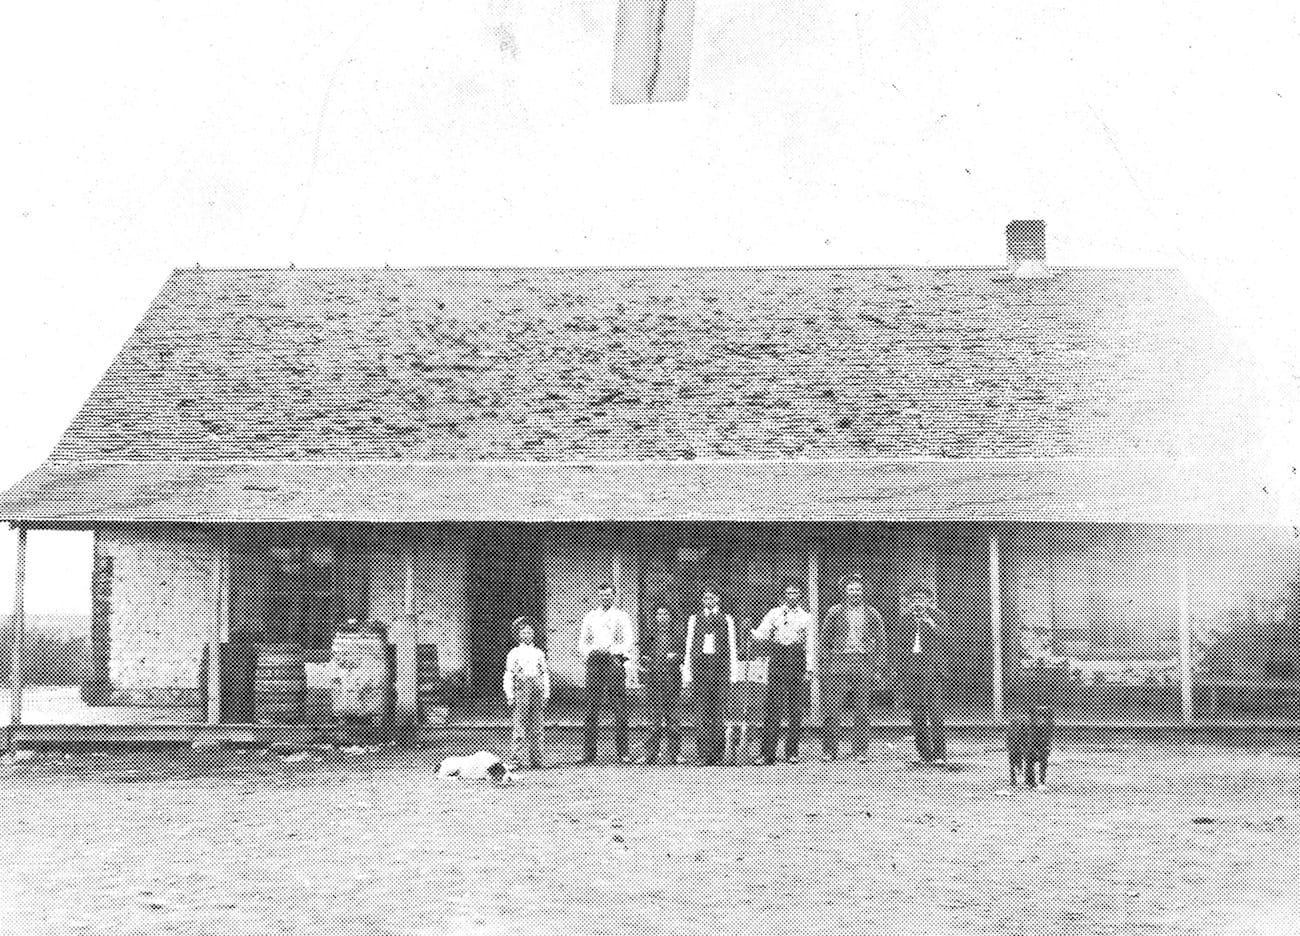 Tour Stop 6: Sutler's Store/Wingfield Building/CV State Bank, c. 1871-1916